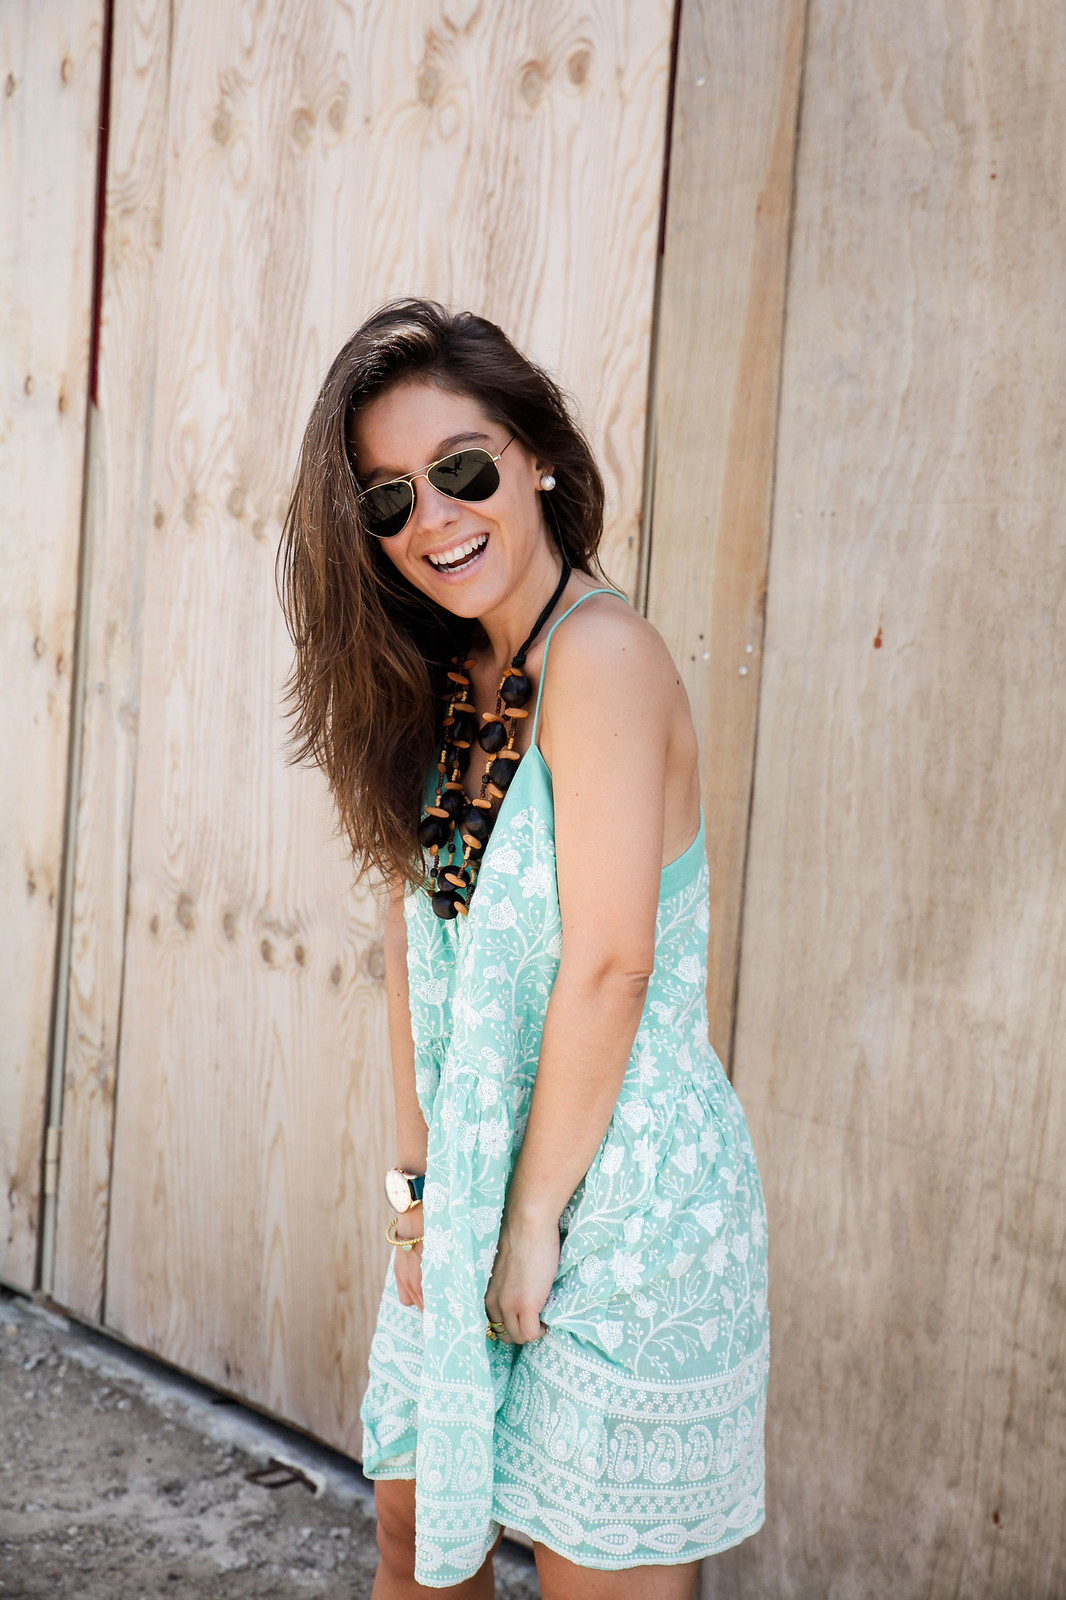 010_turquoise__dress_summer_outfit_miss_june_castañer_cuñas_aguamarina_theguestgirl_influencer_barcelona_laura_santolaria